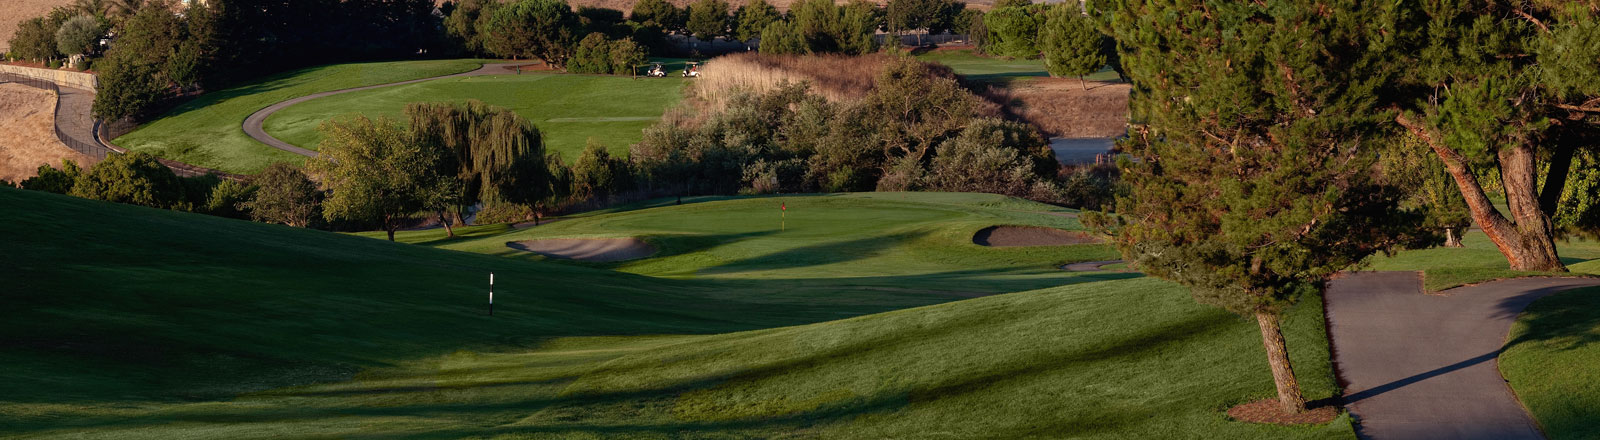 Summitpointe Golf Club Header